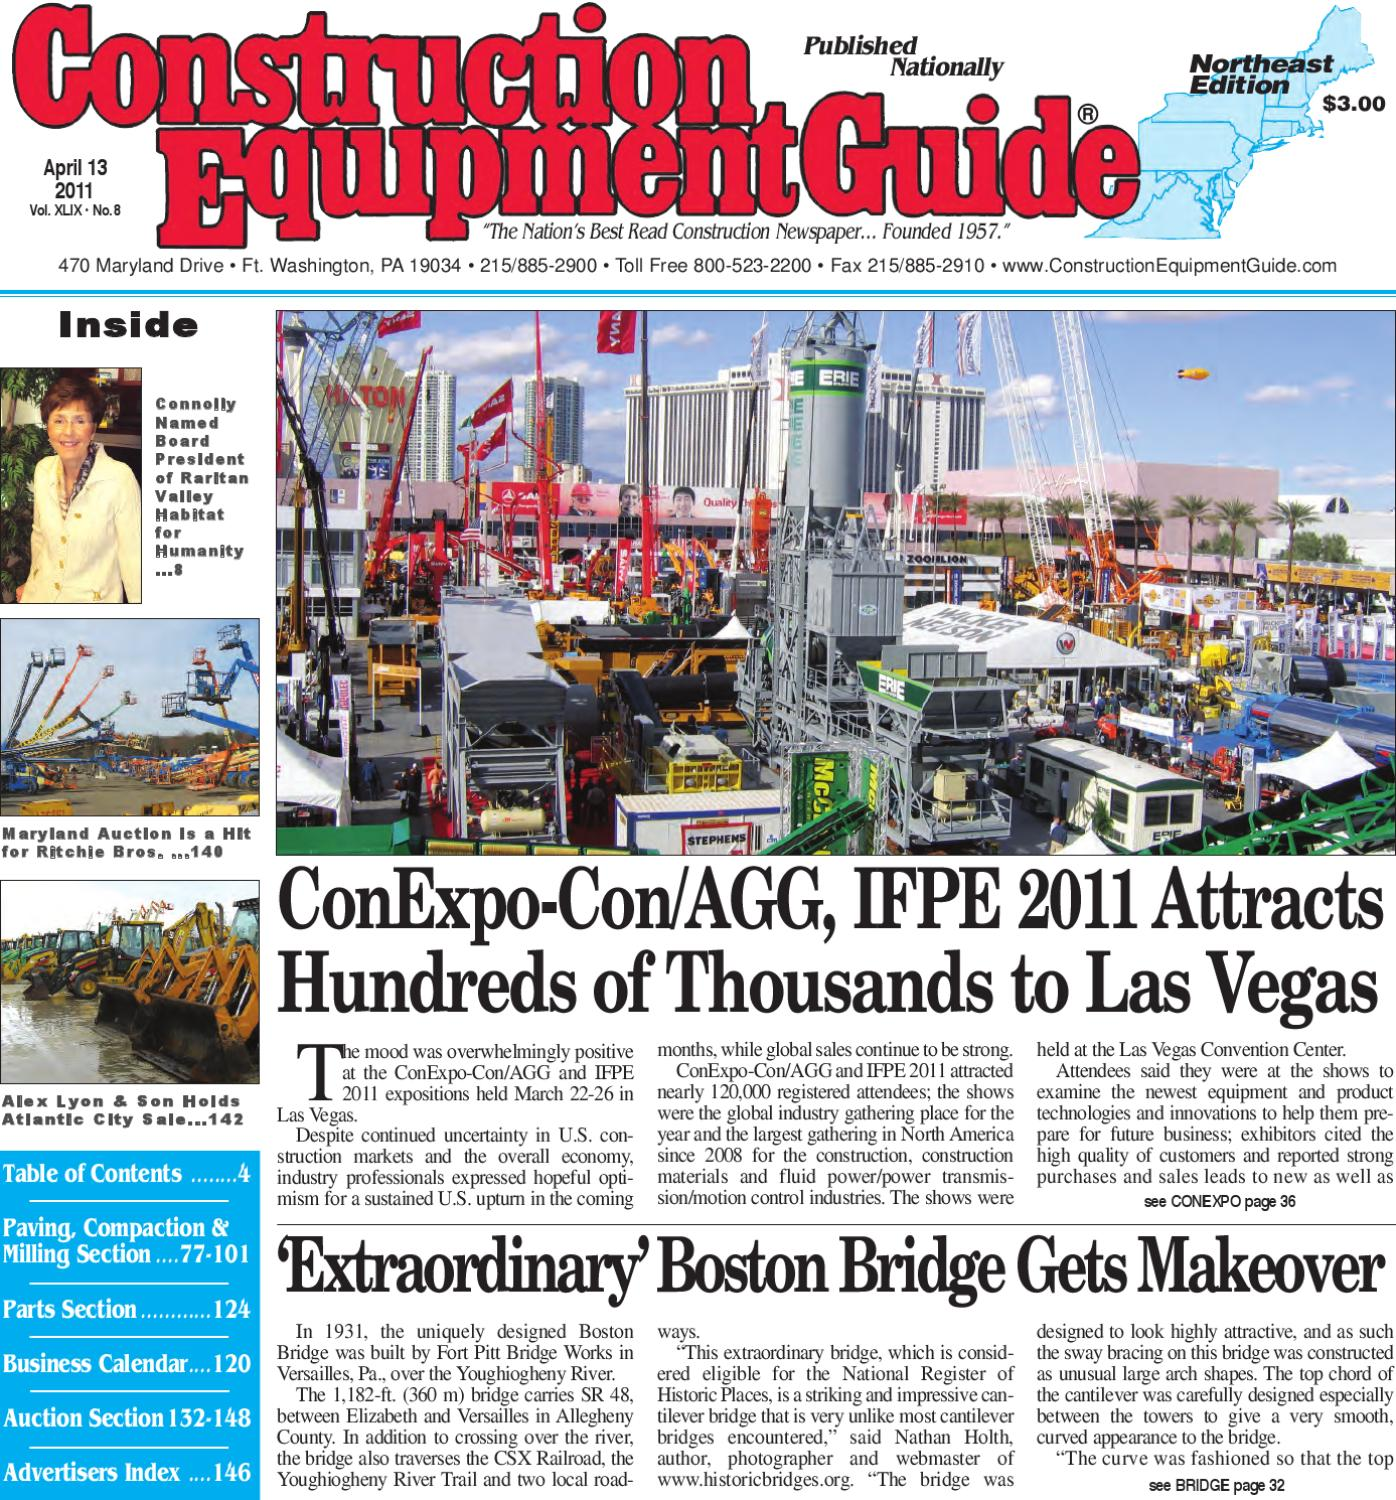 5a47ae2ba88 Northeast #8, 2011 by Construction Equipment Guide - issuu